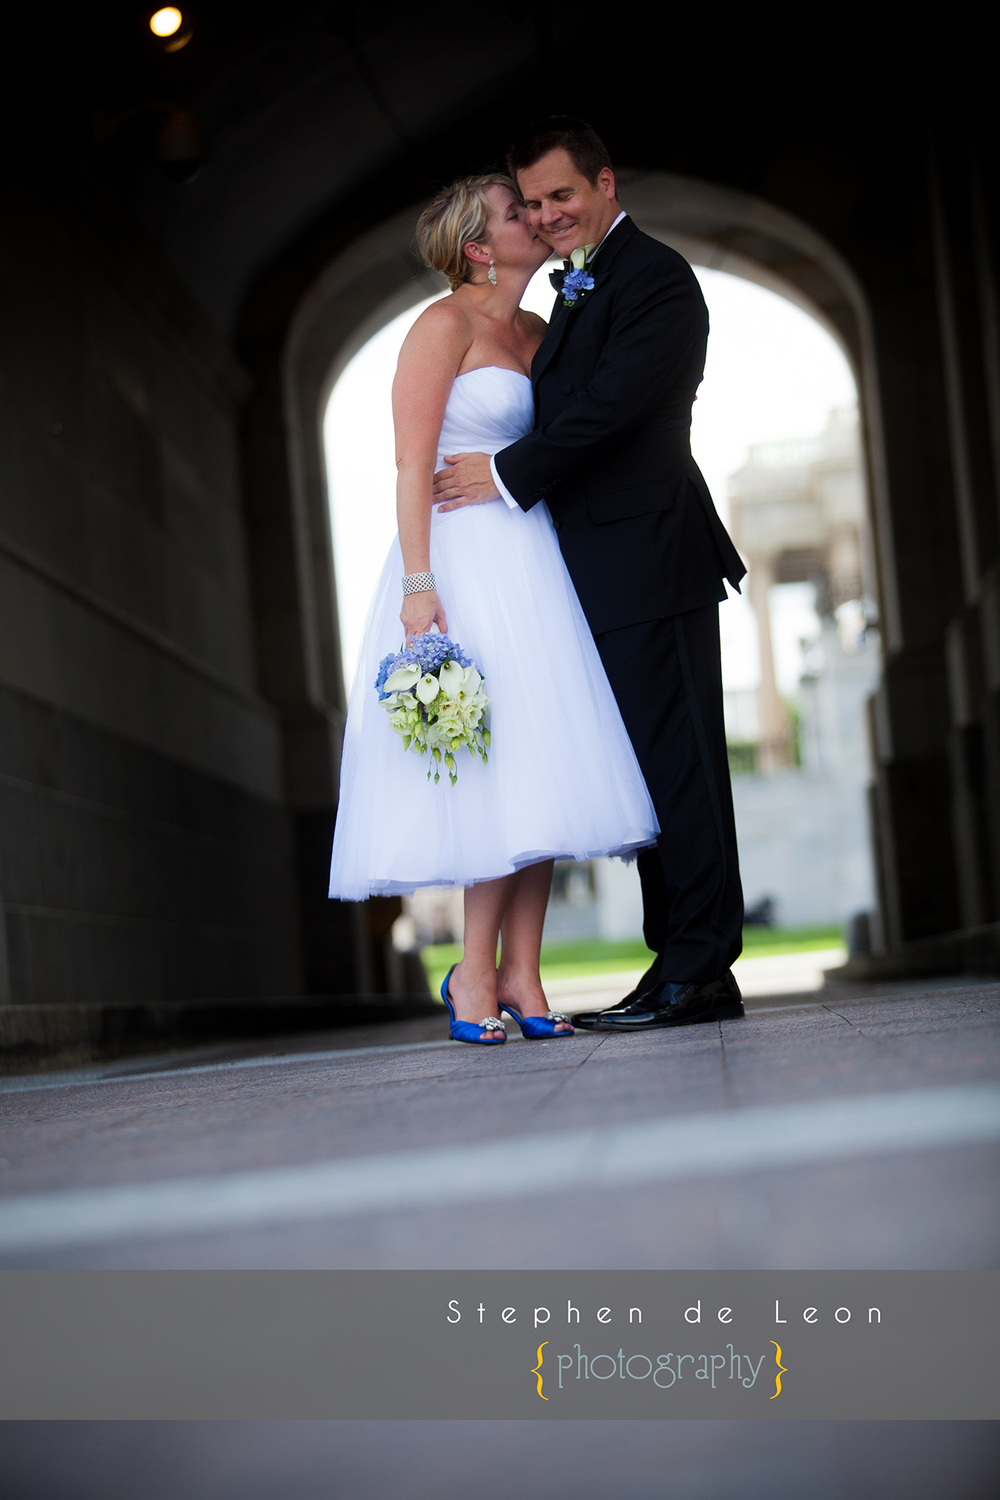 Stephen_de_Leon_Capitol_Wedding_Photography_10.jpg